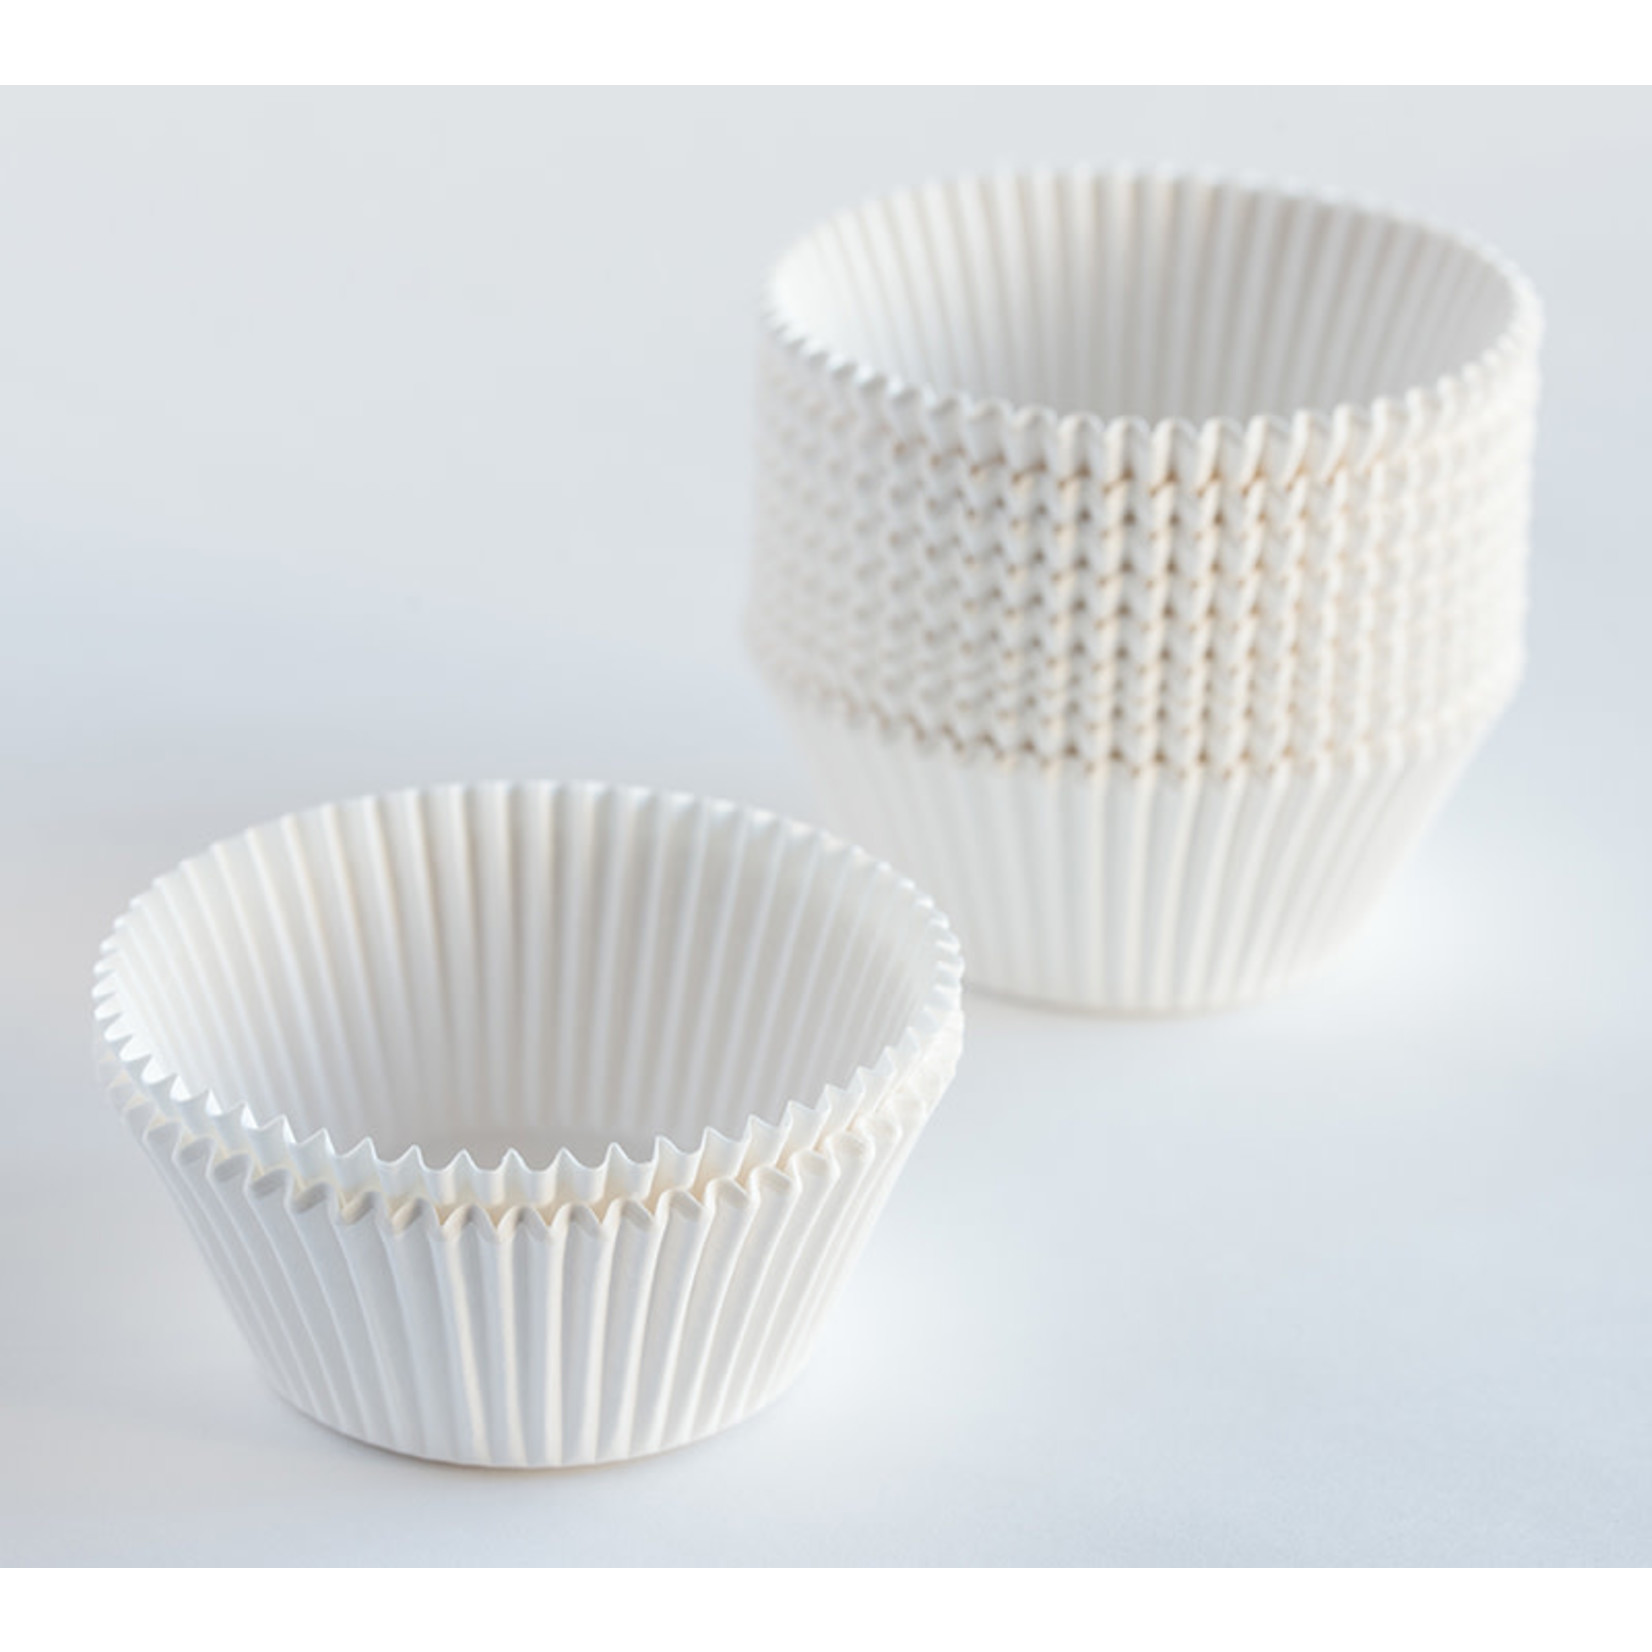 Pastry Depot Cupcake liner - 1.5 x 1 (500ct) - White